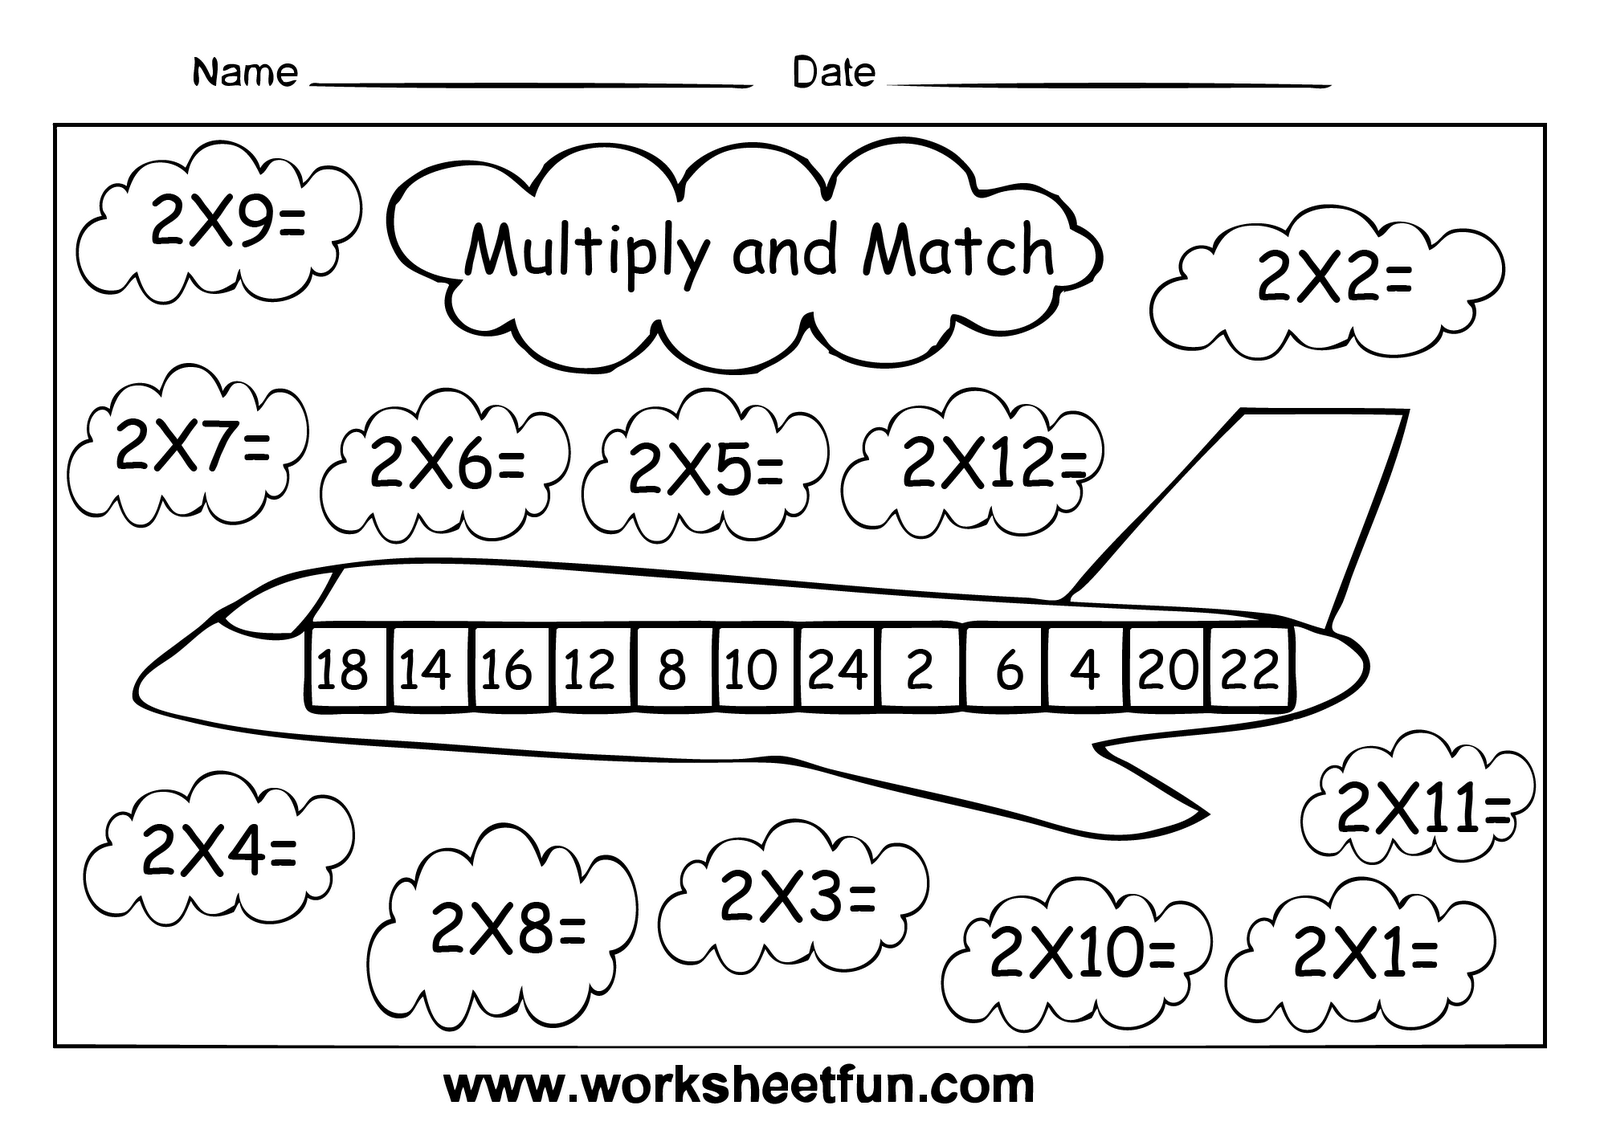 Displaying 16> Images For - Multiplication Facts Worksheets 2s...